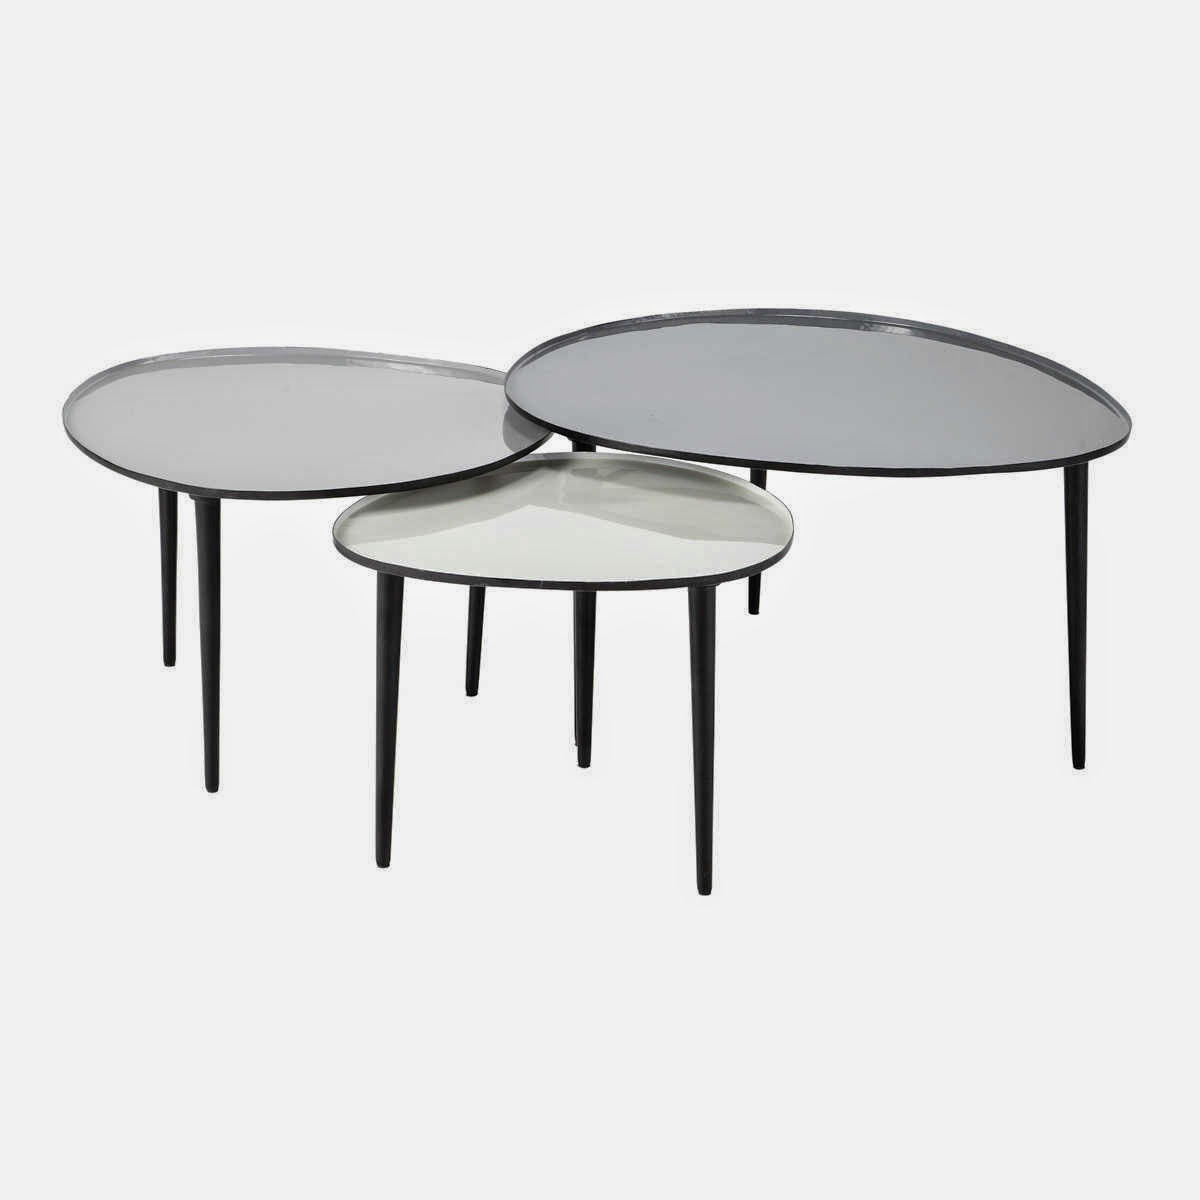 Les tables basses gigognes caract rielle - Table basse ronde gigogne ...